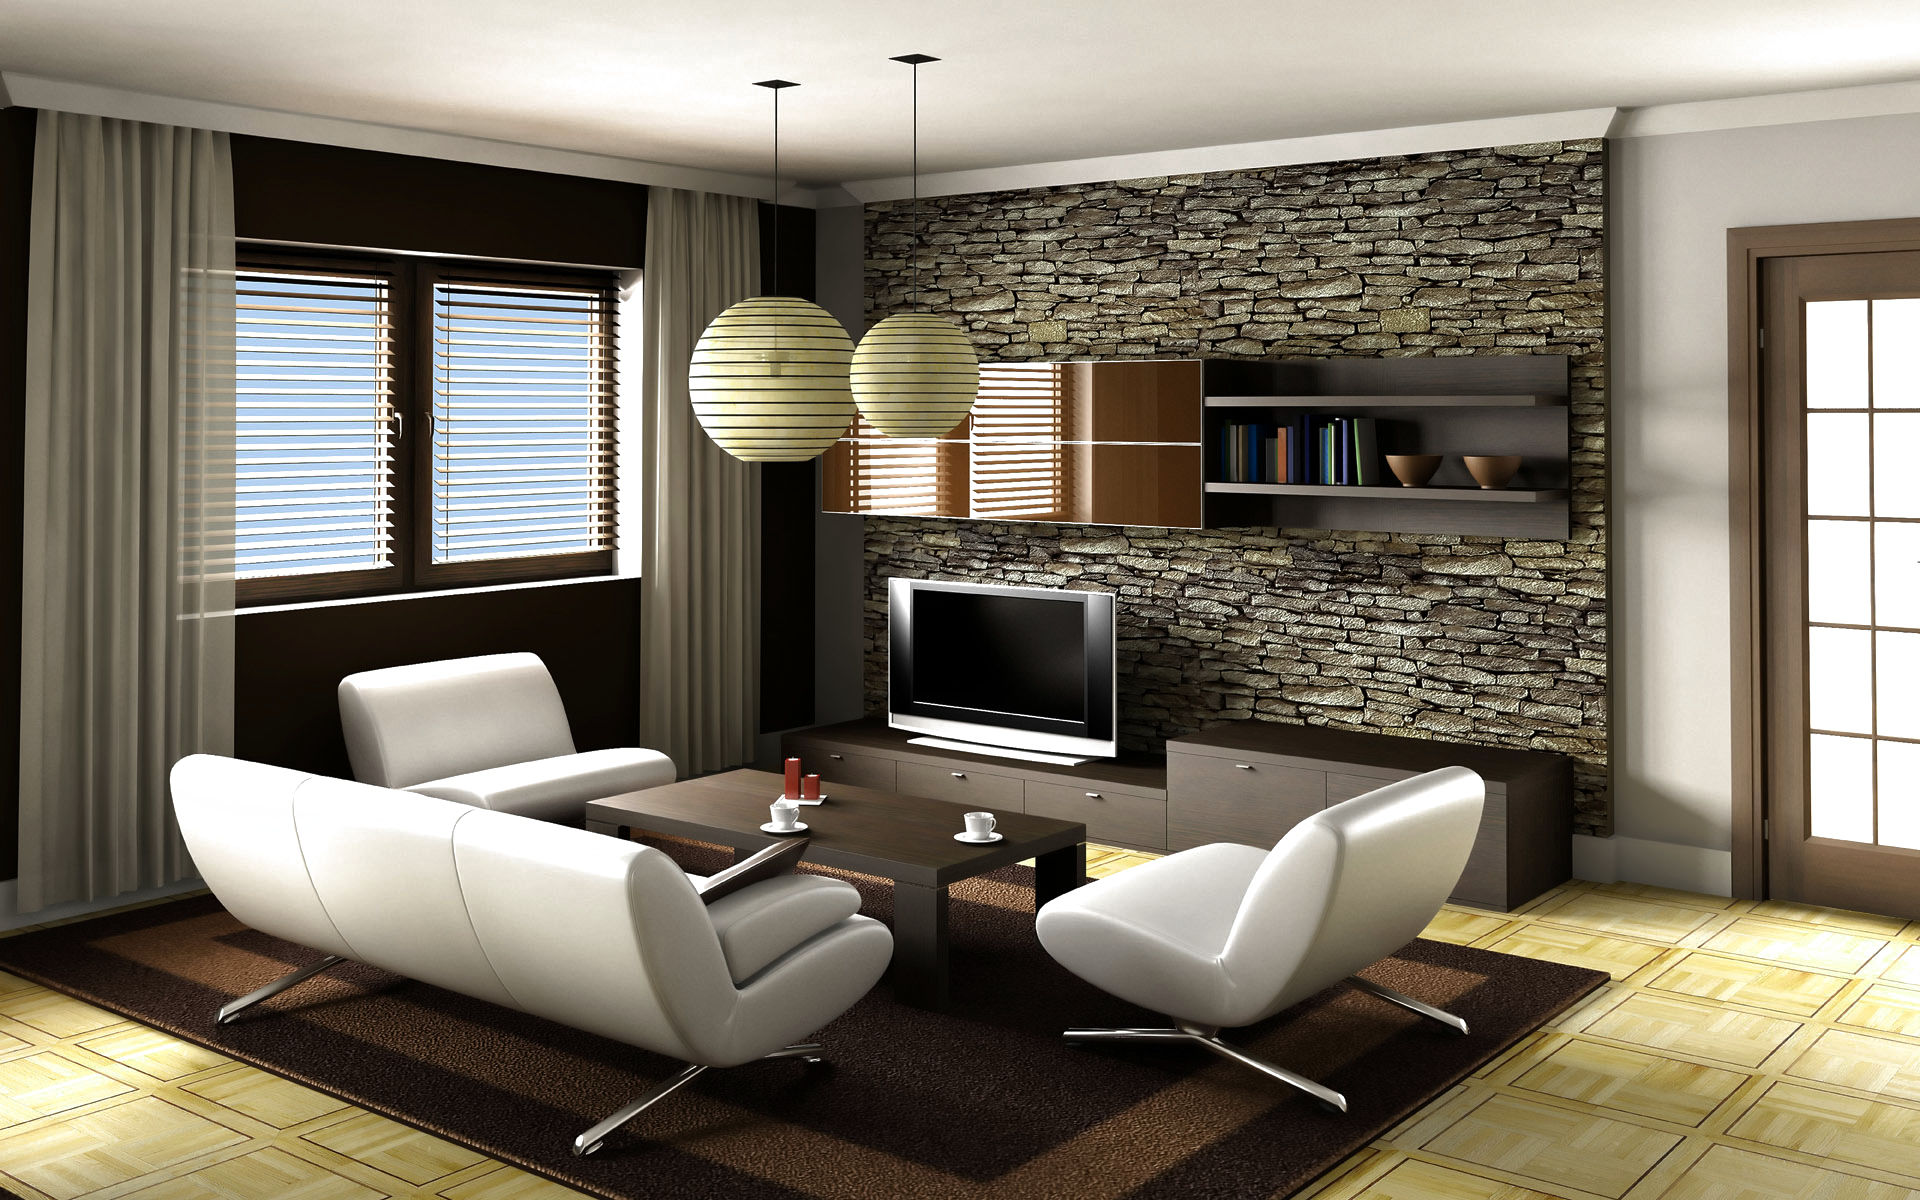 16 modern living room furniture ideas design hgnv com